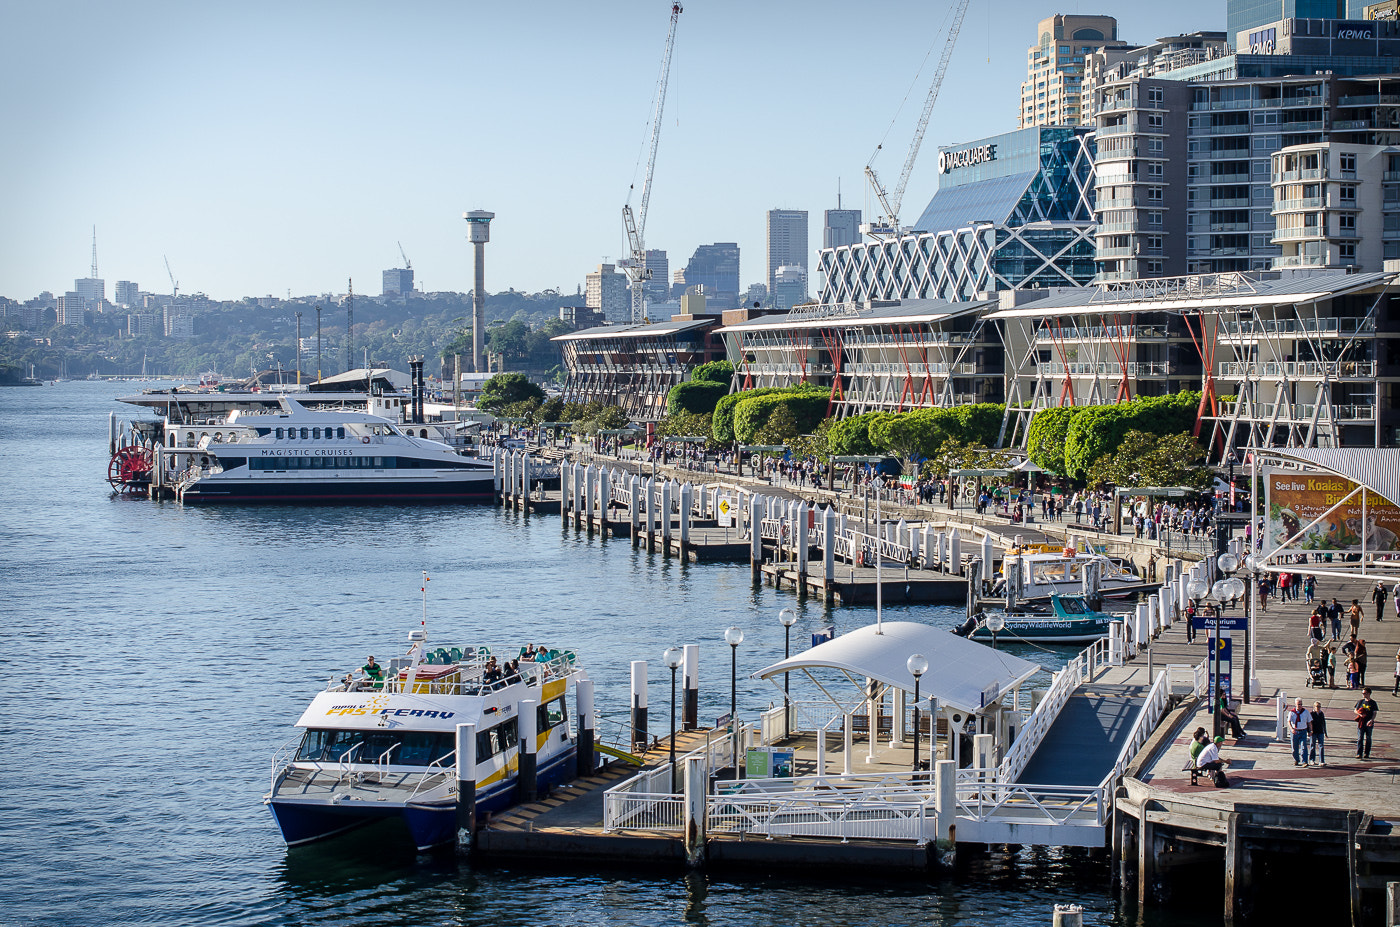 Photograph King St. Wharf by zed1 on 500px